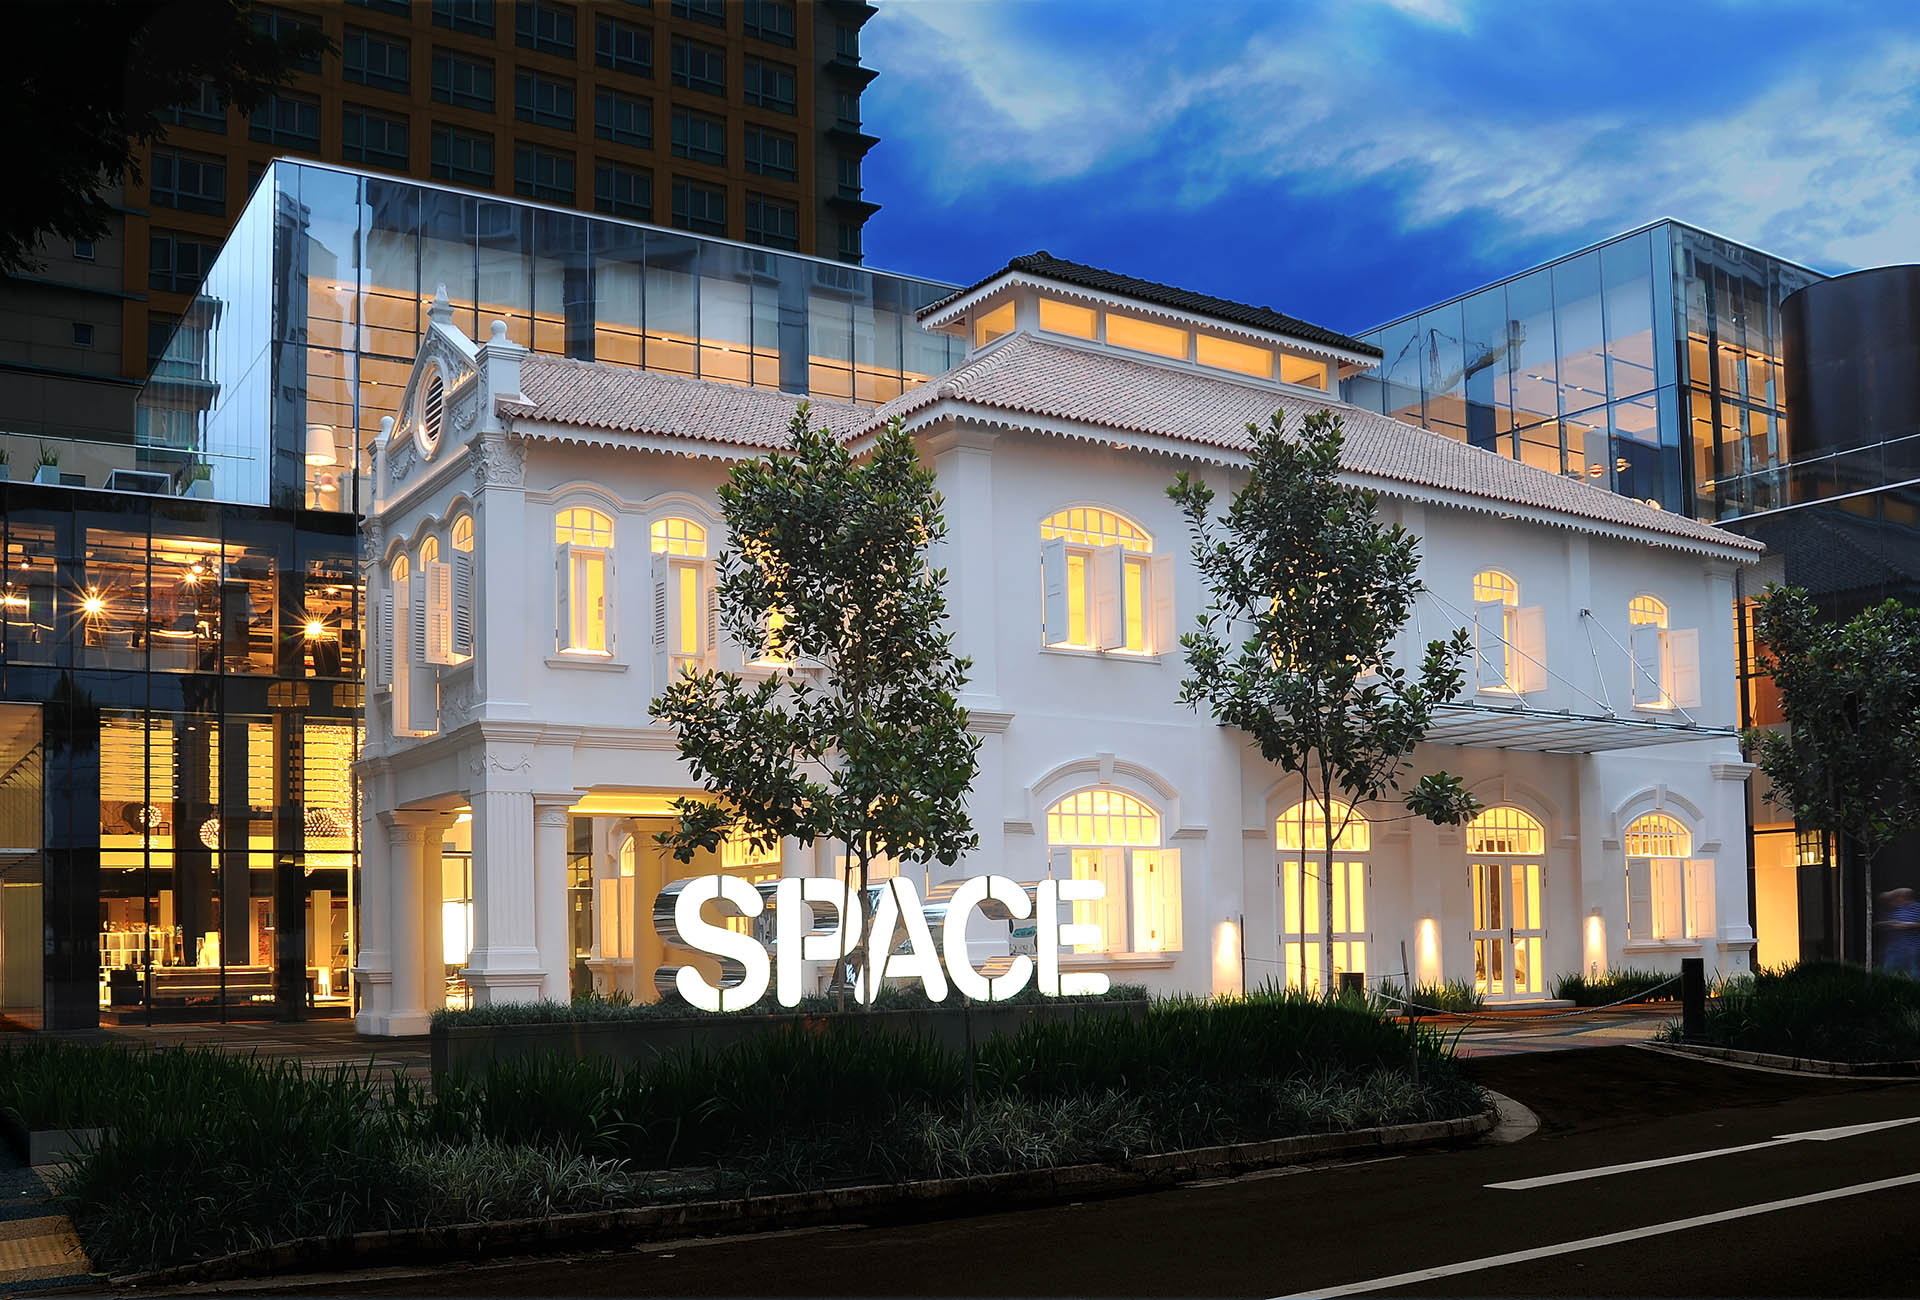 BAXTER BECAME PART OF THE SPACE FURNITURE FAMILY IN SINGAPORE